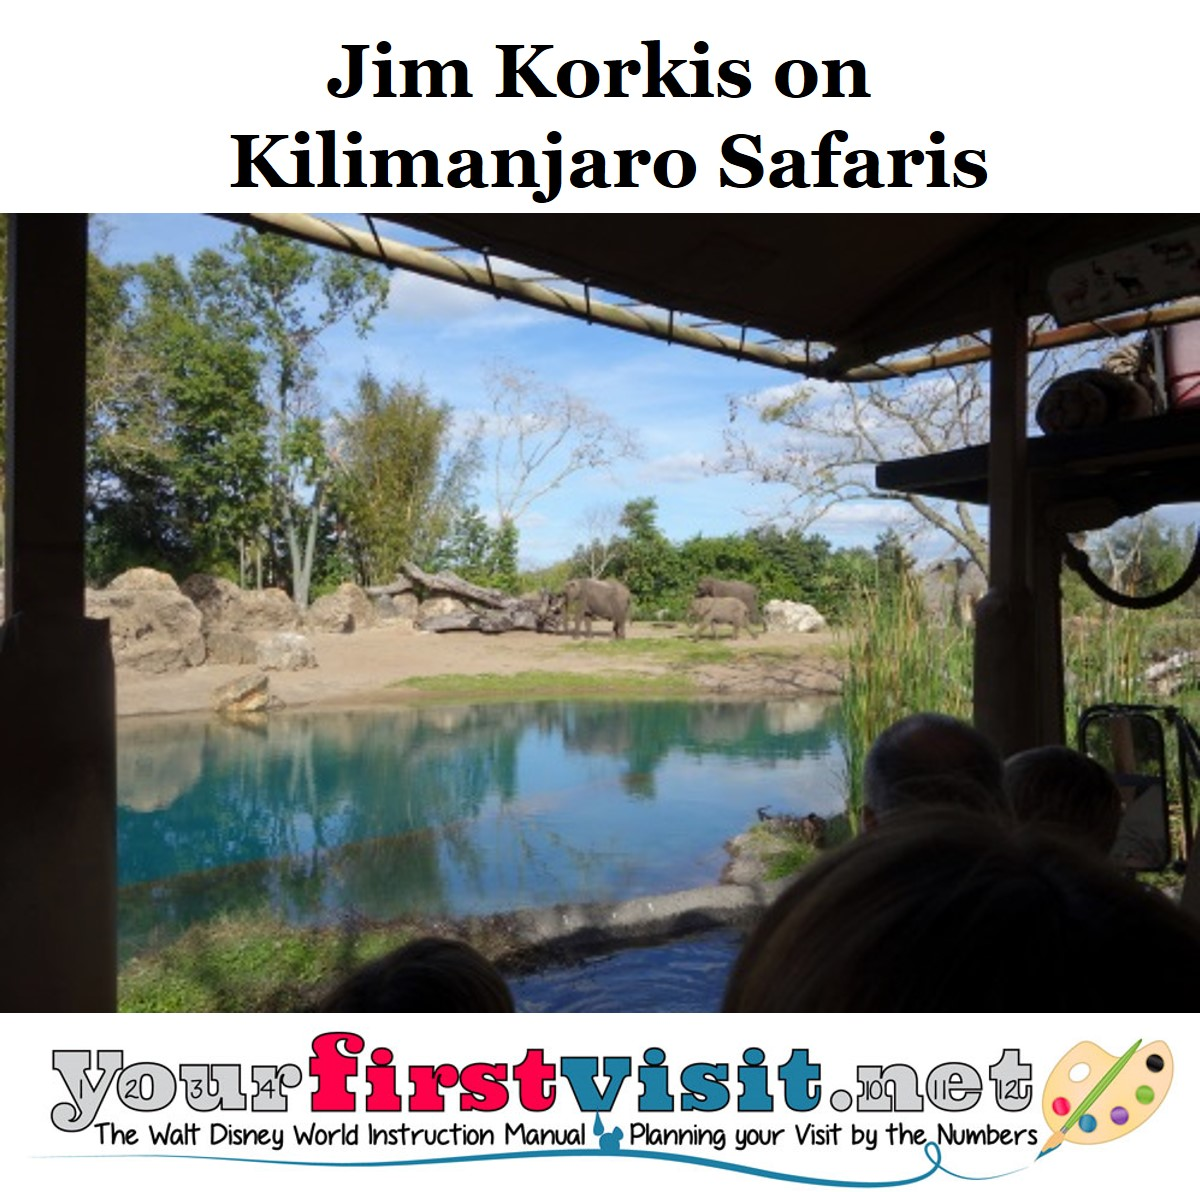 Jim Korkis on Kilimanjaro Safaris from yourfirstvsit.net